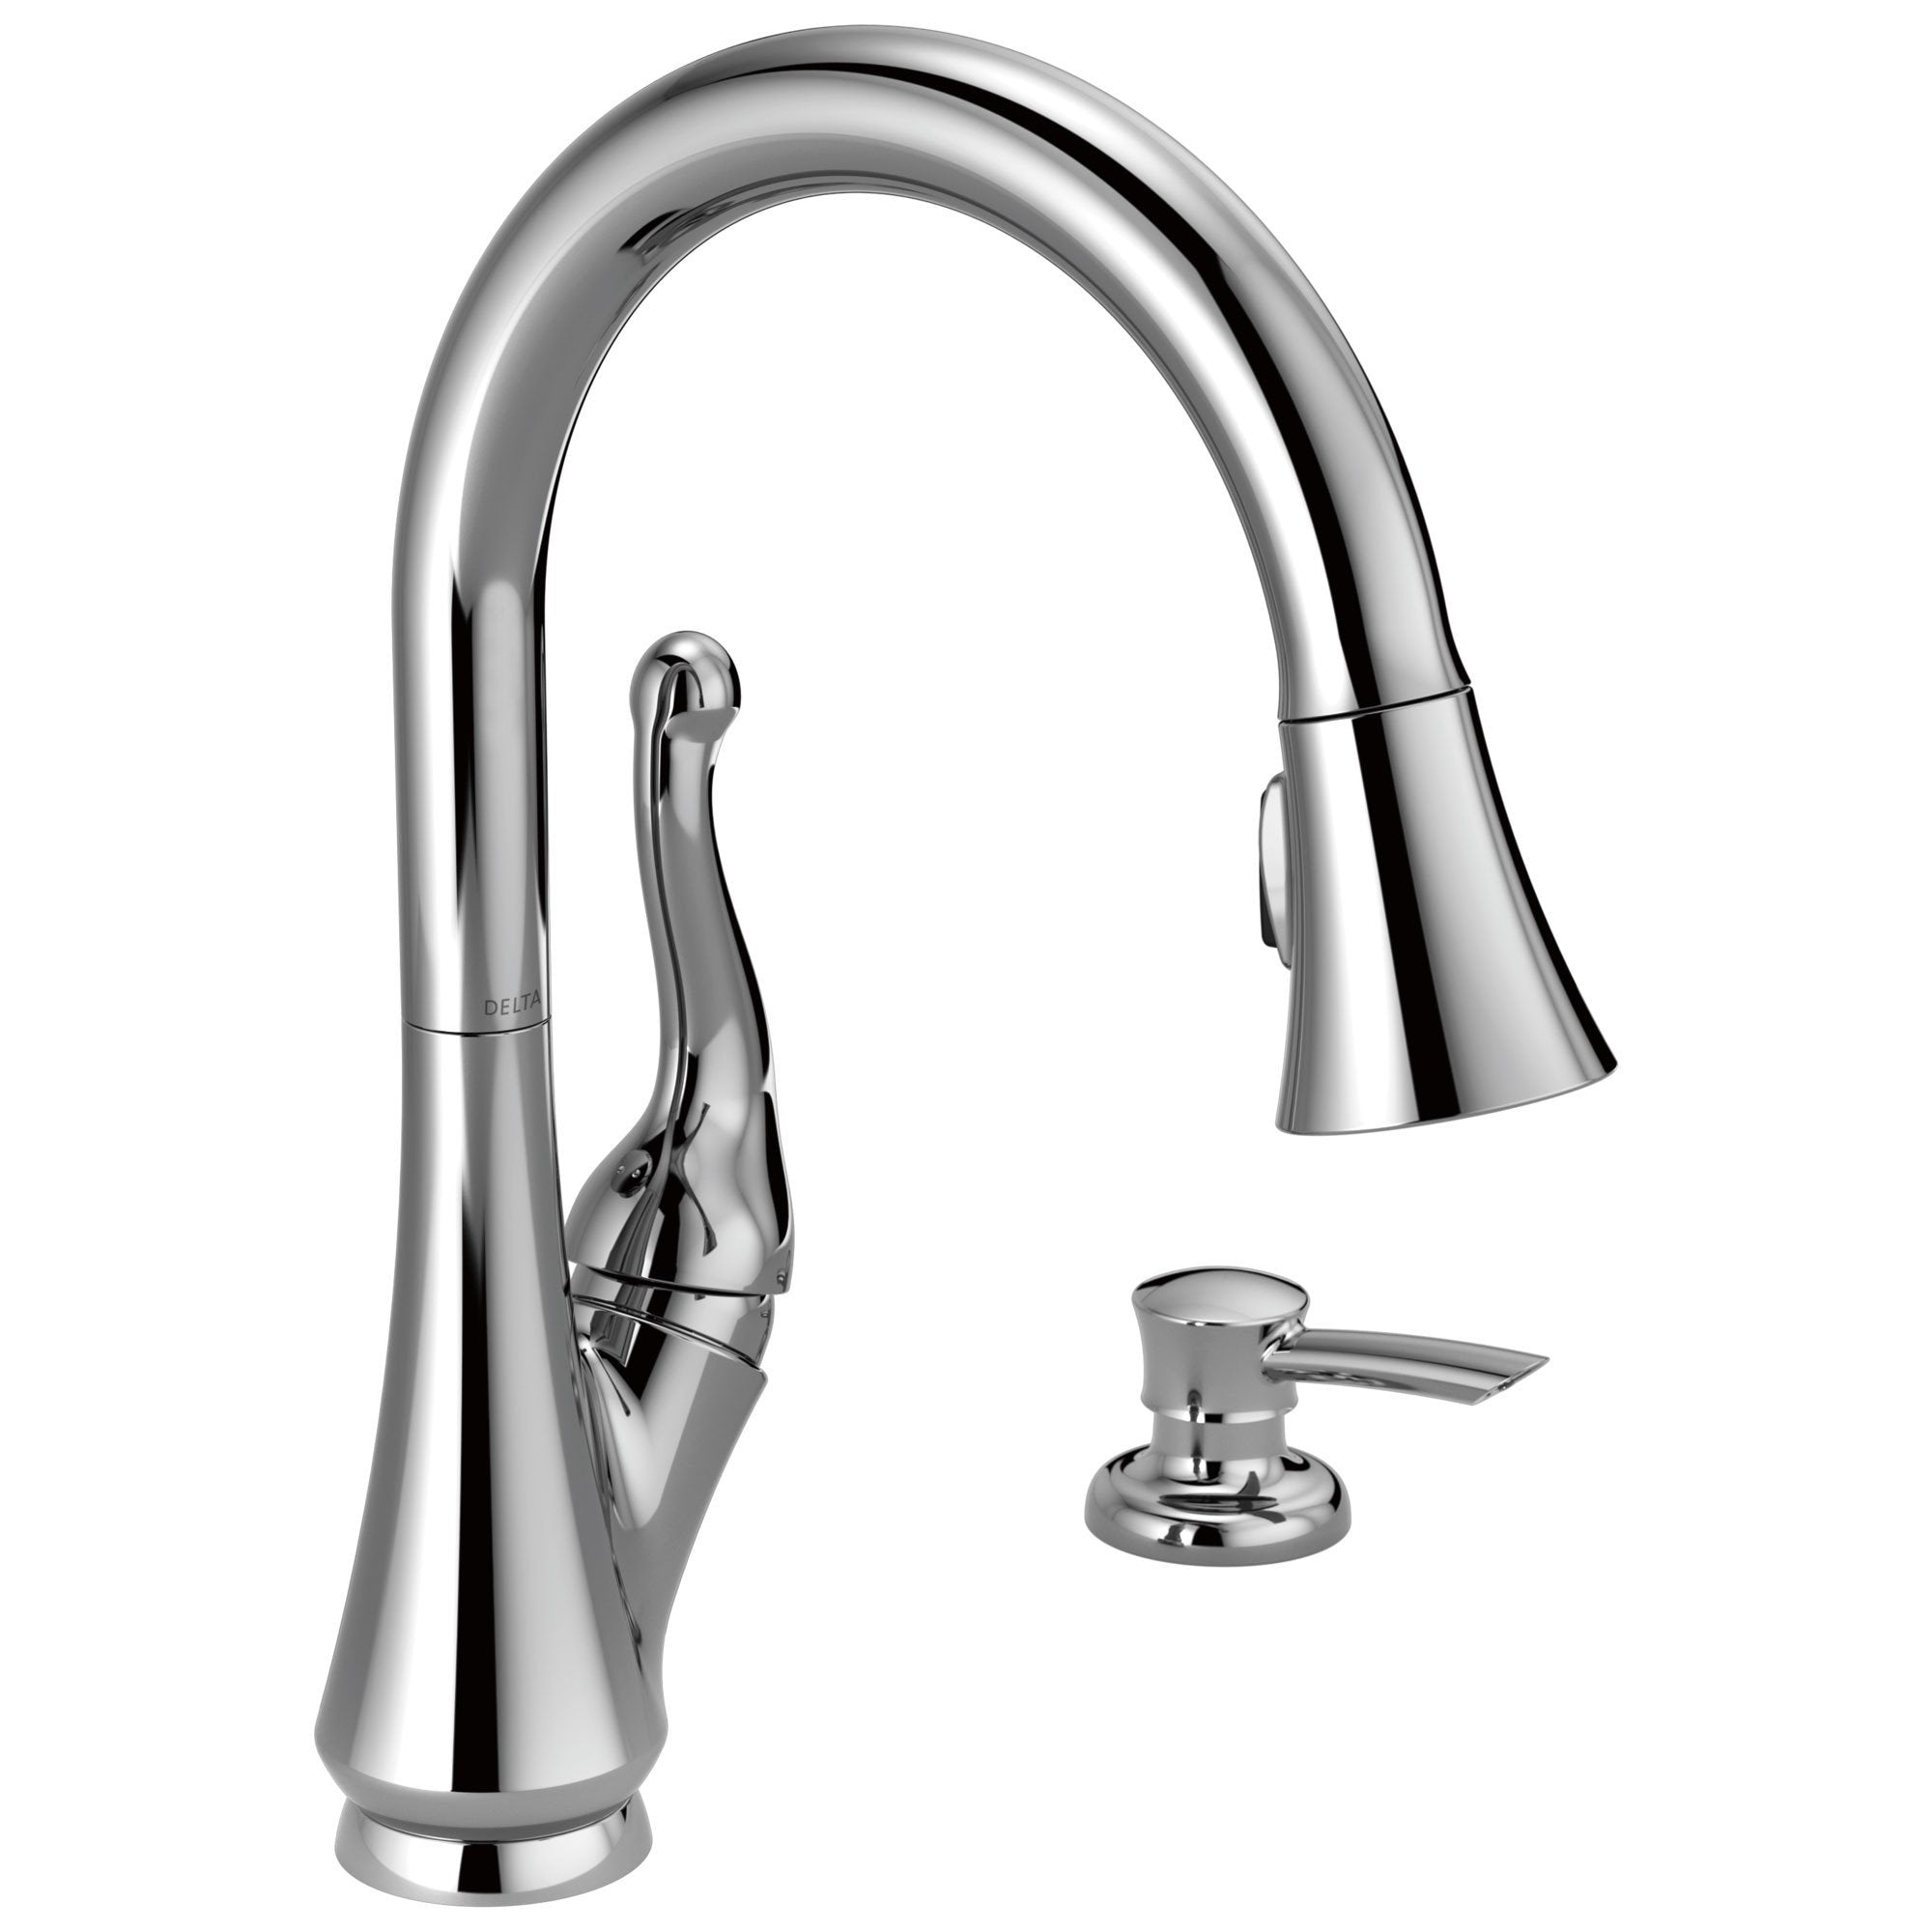 Delta Talbott Collection Chrome Finish Single Handle 2-Hole Pull-Down Spray  Kitchen Sink Faucet with Soap Dispenser D16968SDDST